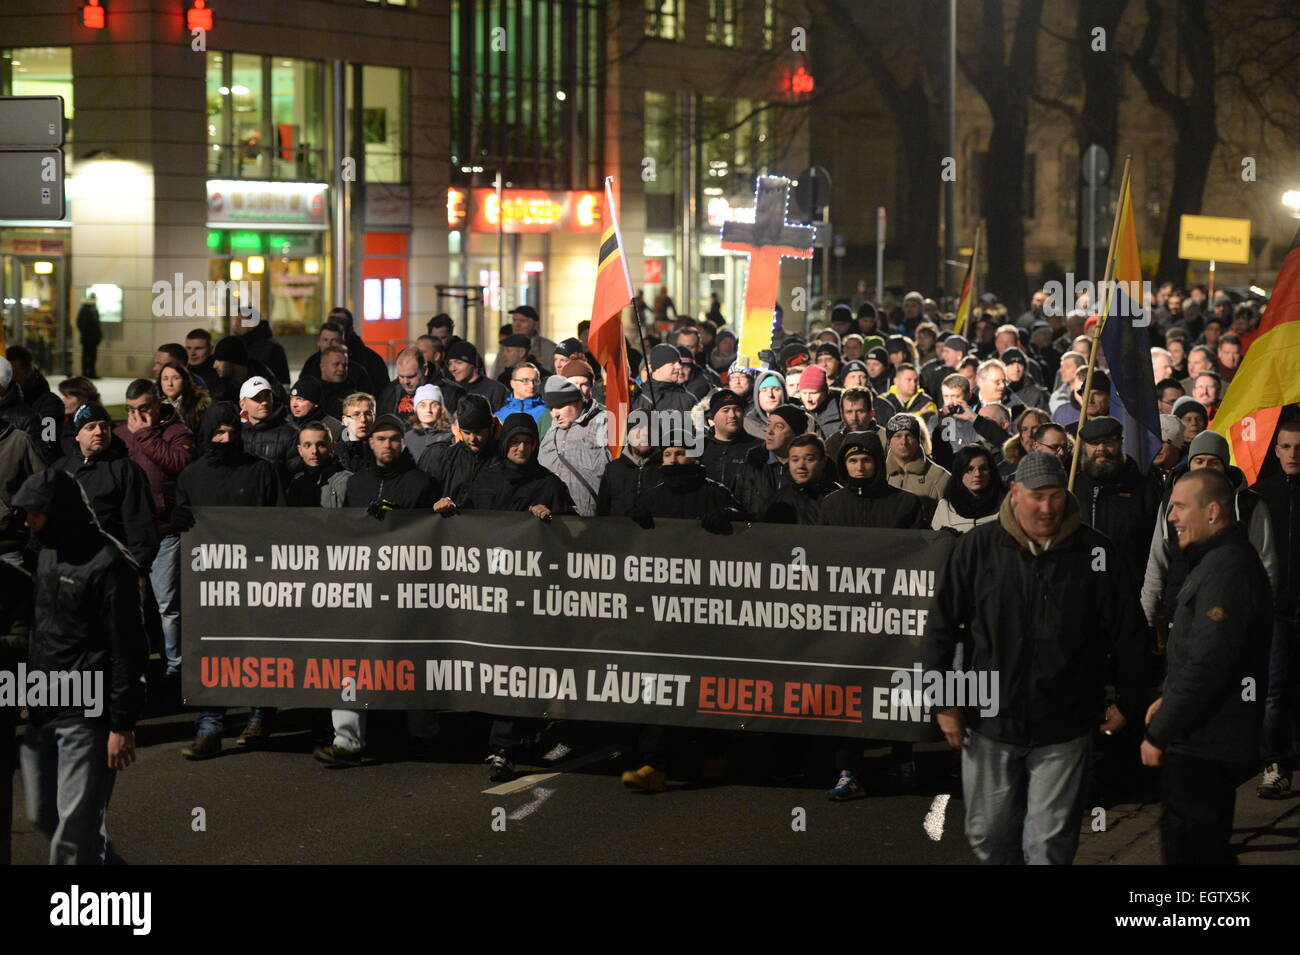 Dresden, Germany. 2nd March, 2015. Supporters of the anti-Islam 'Pegida' movement demonstrate holding a - Stock Image